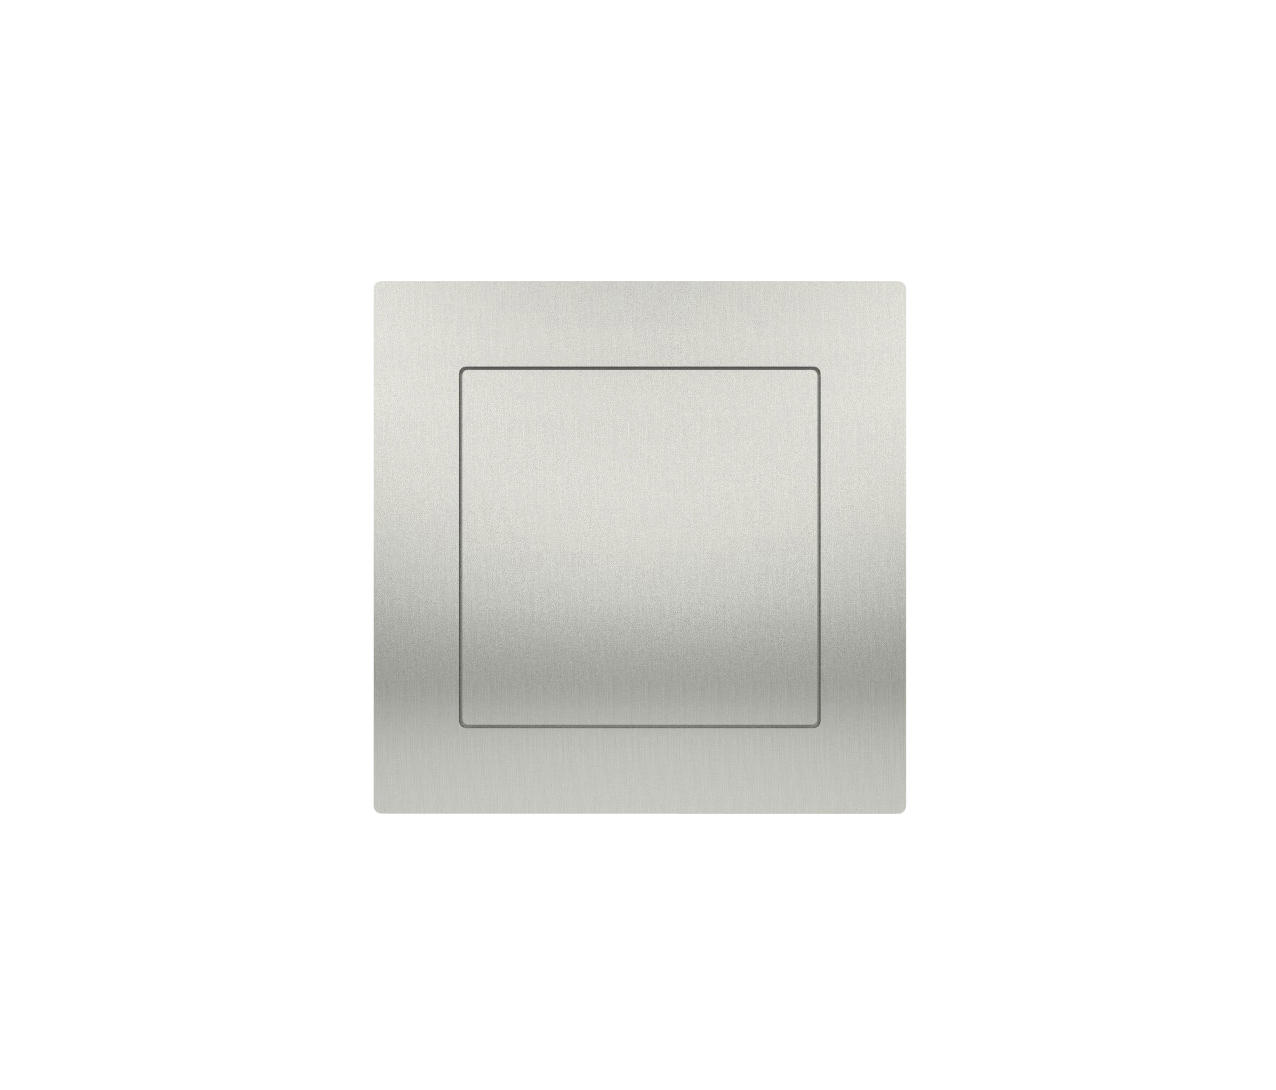 UÑEROS | I-4501 - Cabinet recessed handles from Didheya | Architonic